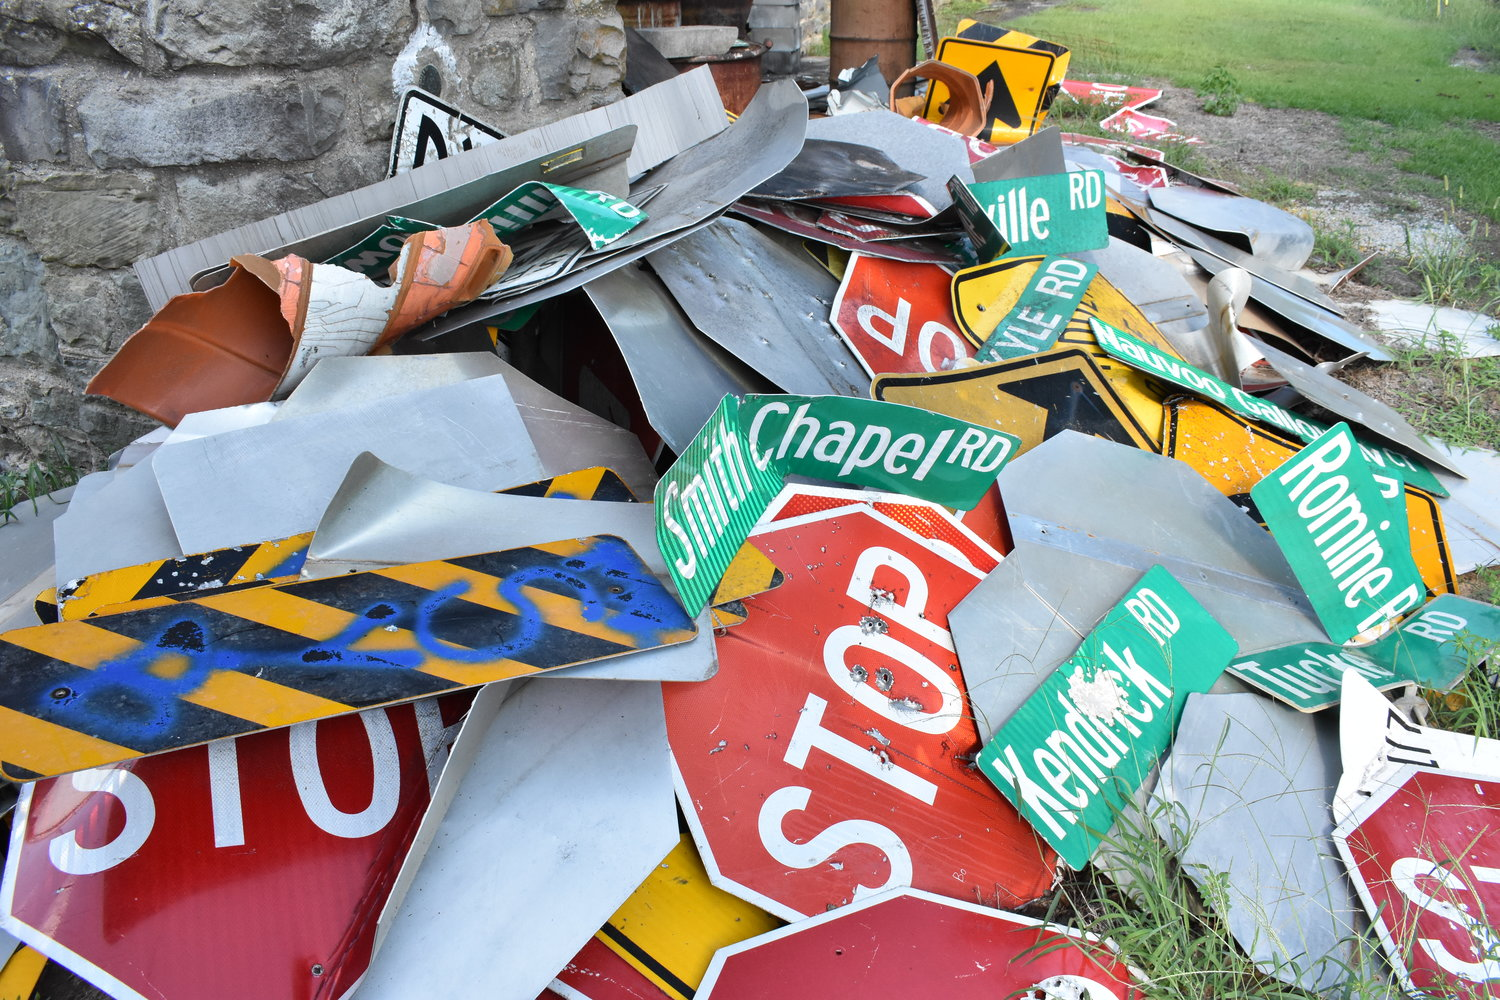 These street signs, stored behind the Road and Bridge Department building in Jasper, represent stolen and vandalized county road signs that have been recovered. Walker County officials say the constant theft and vandalism is costly to the county, and dangerous to residents.